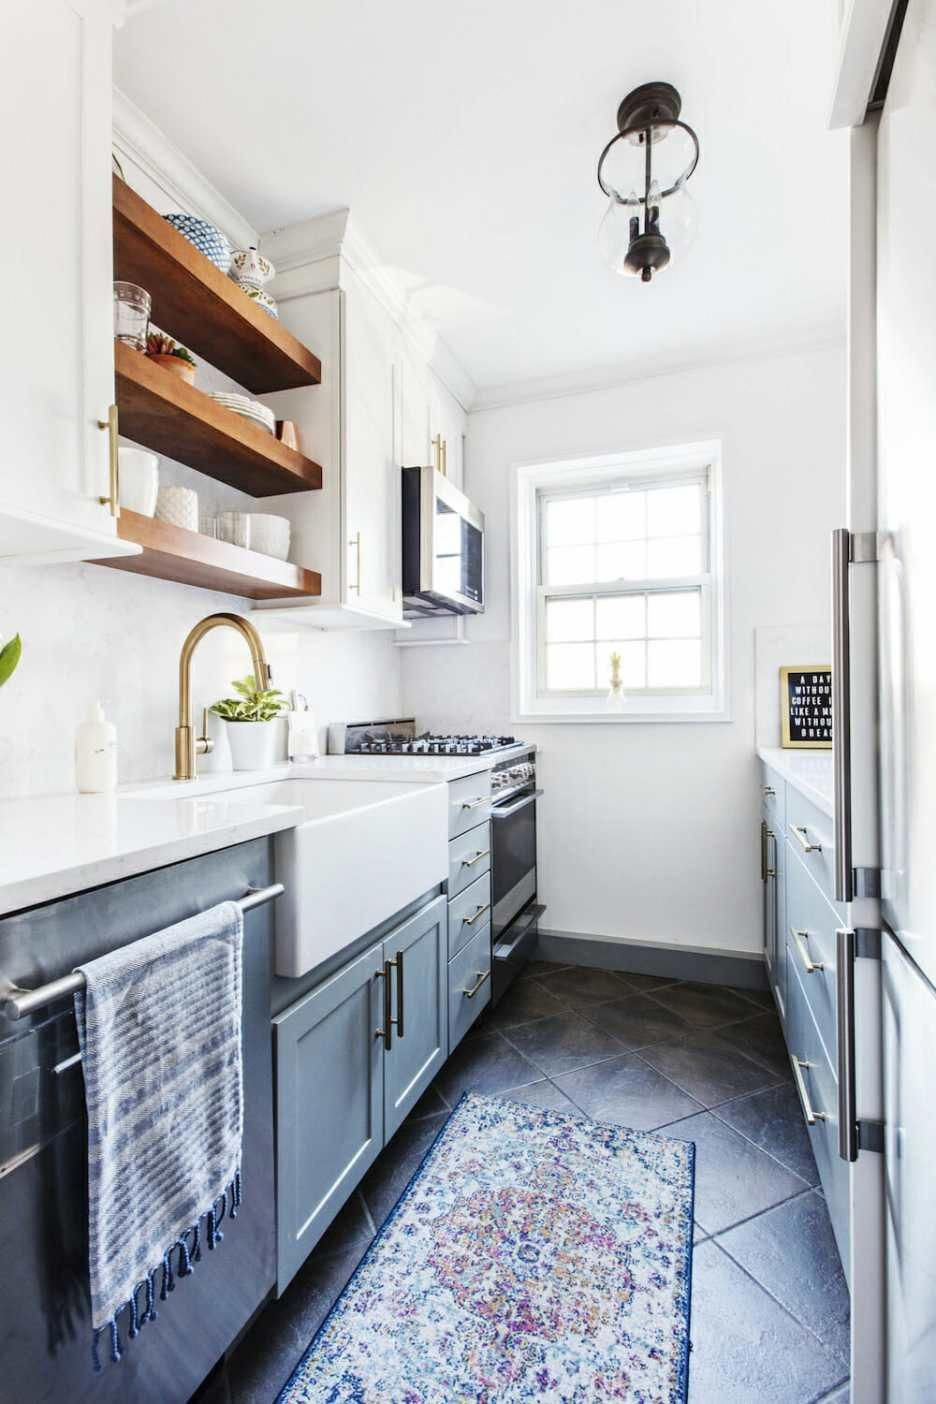 A Dark Galley Kitchen Transforms Thanks To Two Tone Cabinets Open Shelving And Mixed Met In 2020 Kitchen Remodel Small Kitchen Design Small Galley Kitchen Renovation